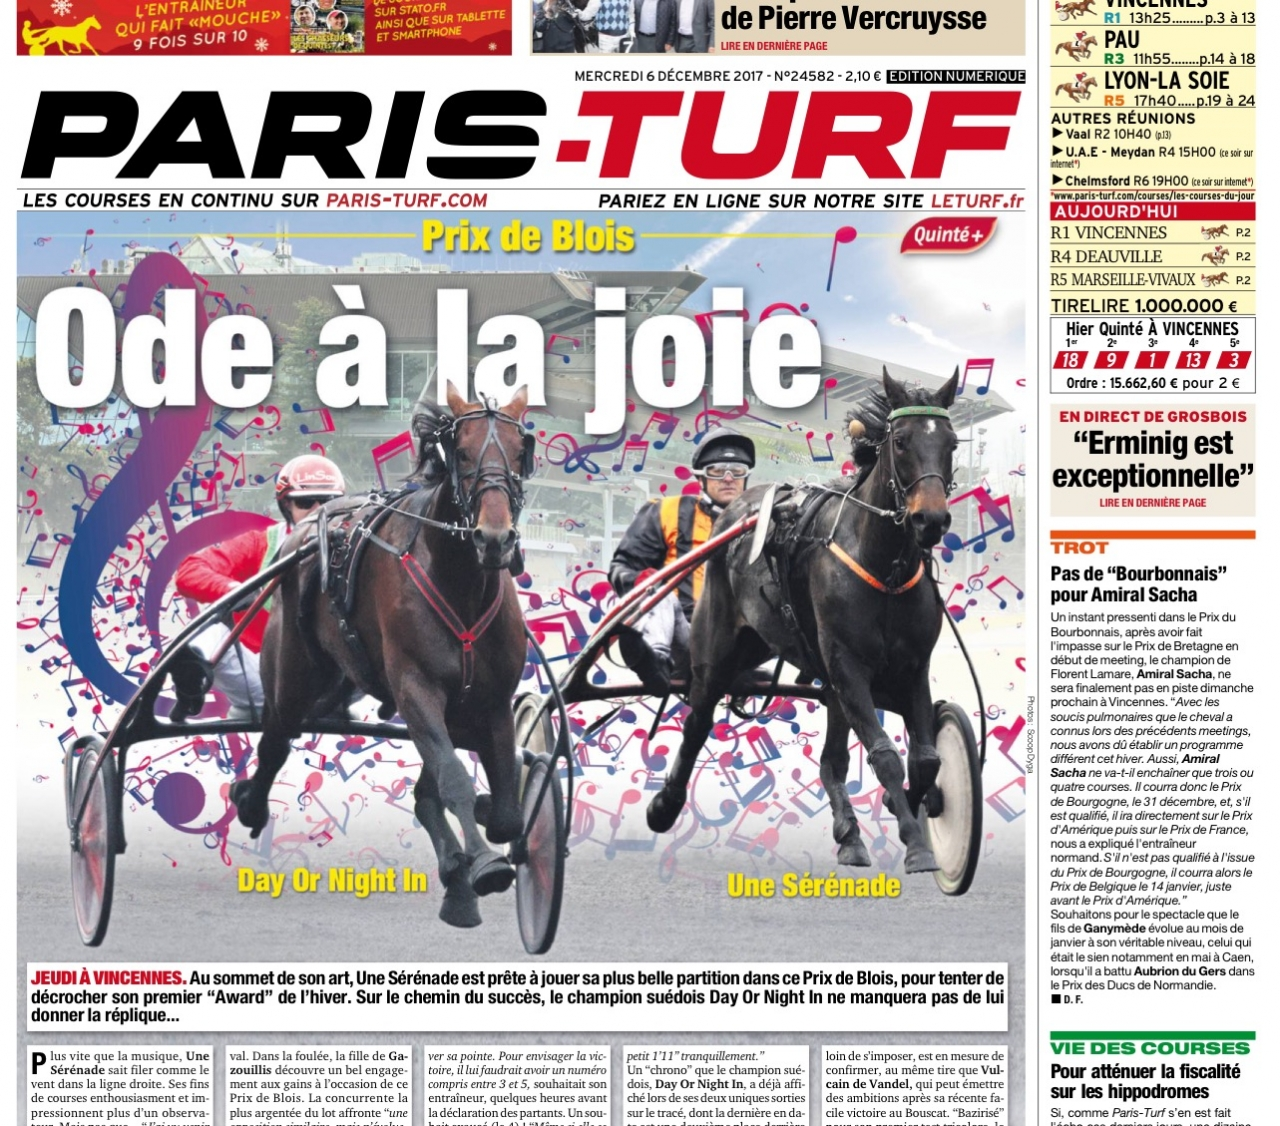 Johan Untersteiners Day or Night In gör sin fjärde start på Vincennes under detta vintermeeting. Hästen pryder omslaget av den franska facktidningen ihop med Une Serenade, den enda häst som tidningen tippar före Day Or Night In. Foto: Paris-Turf